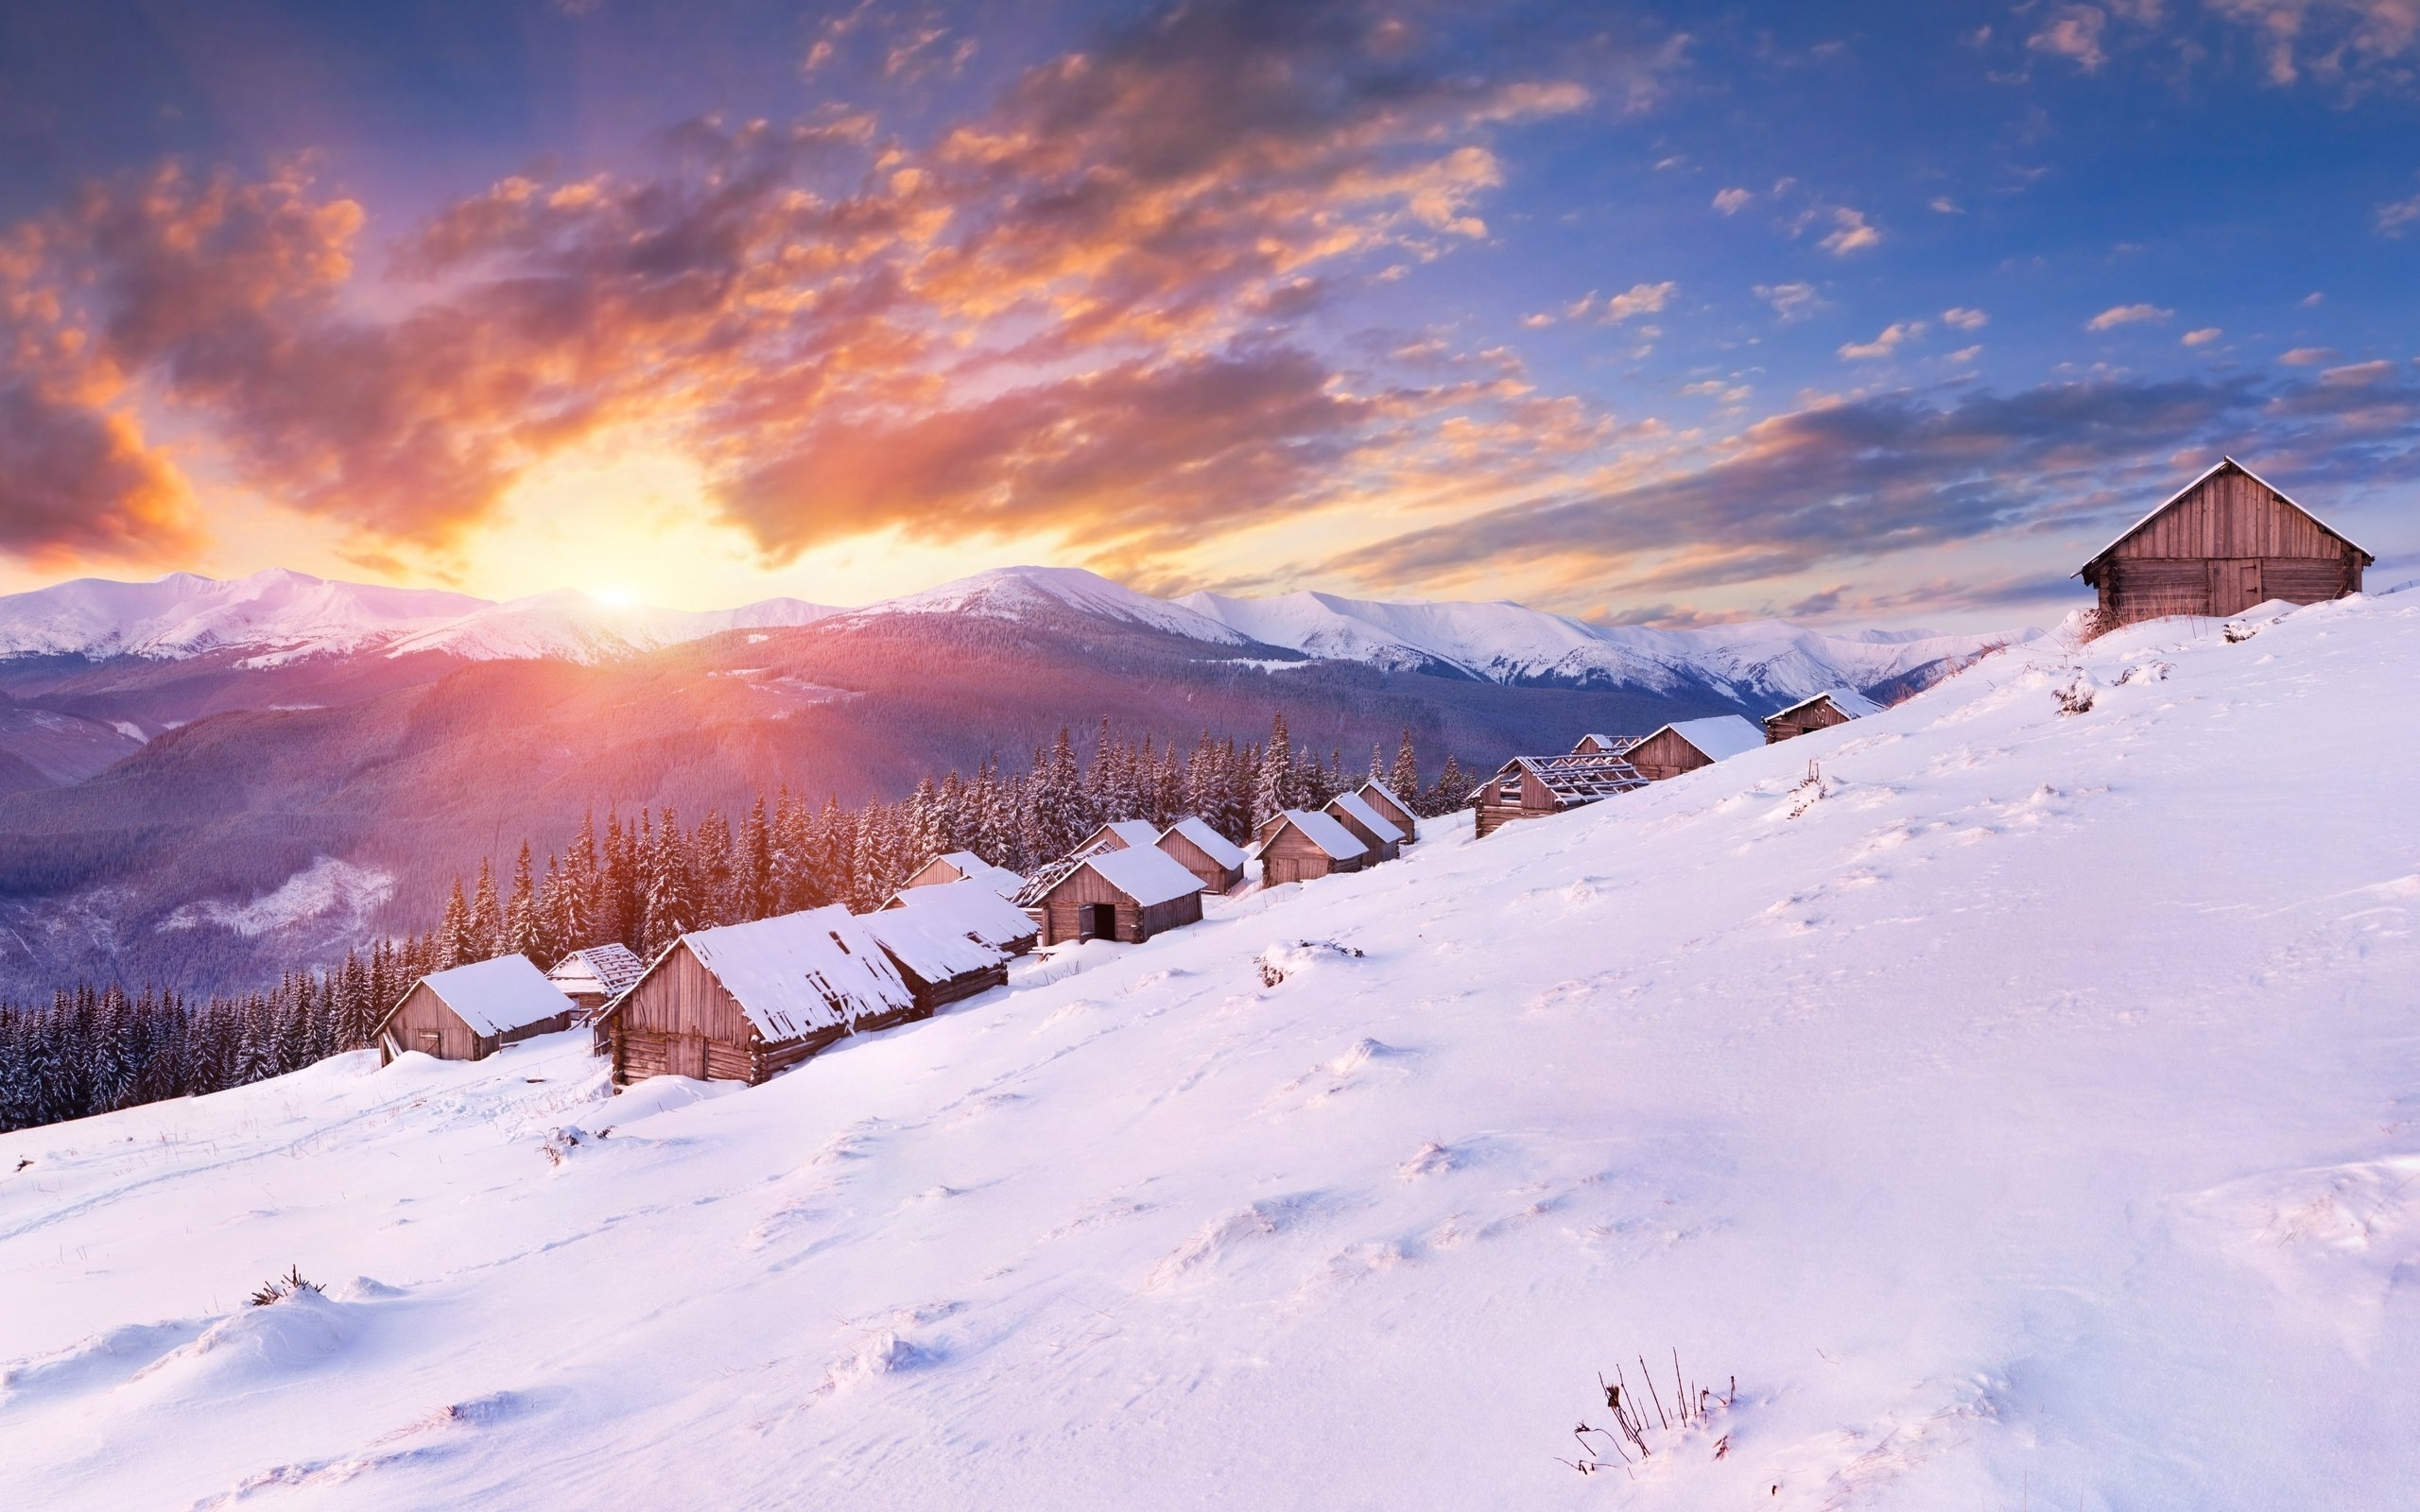 44394 download wallpaper Landscape, Winter, Mountains screensavers and pictures for free